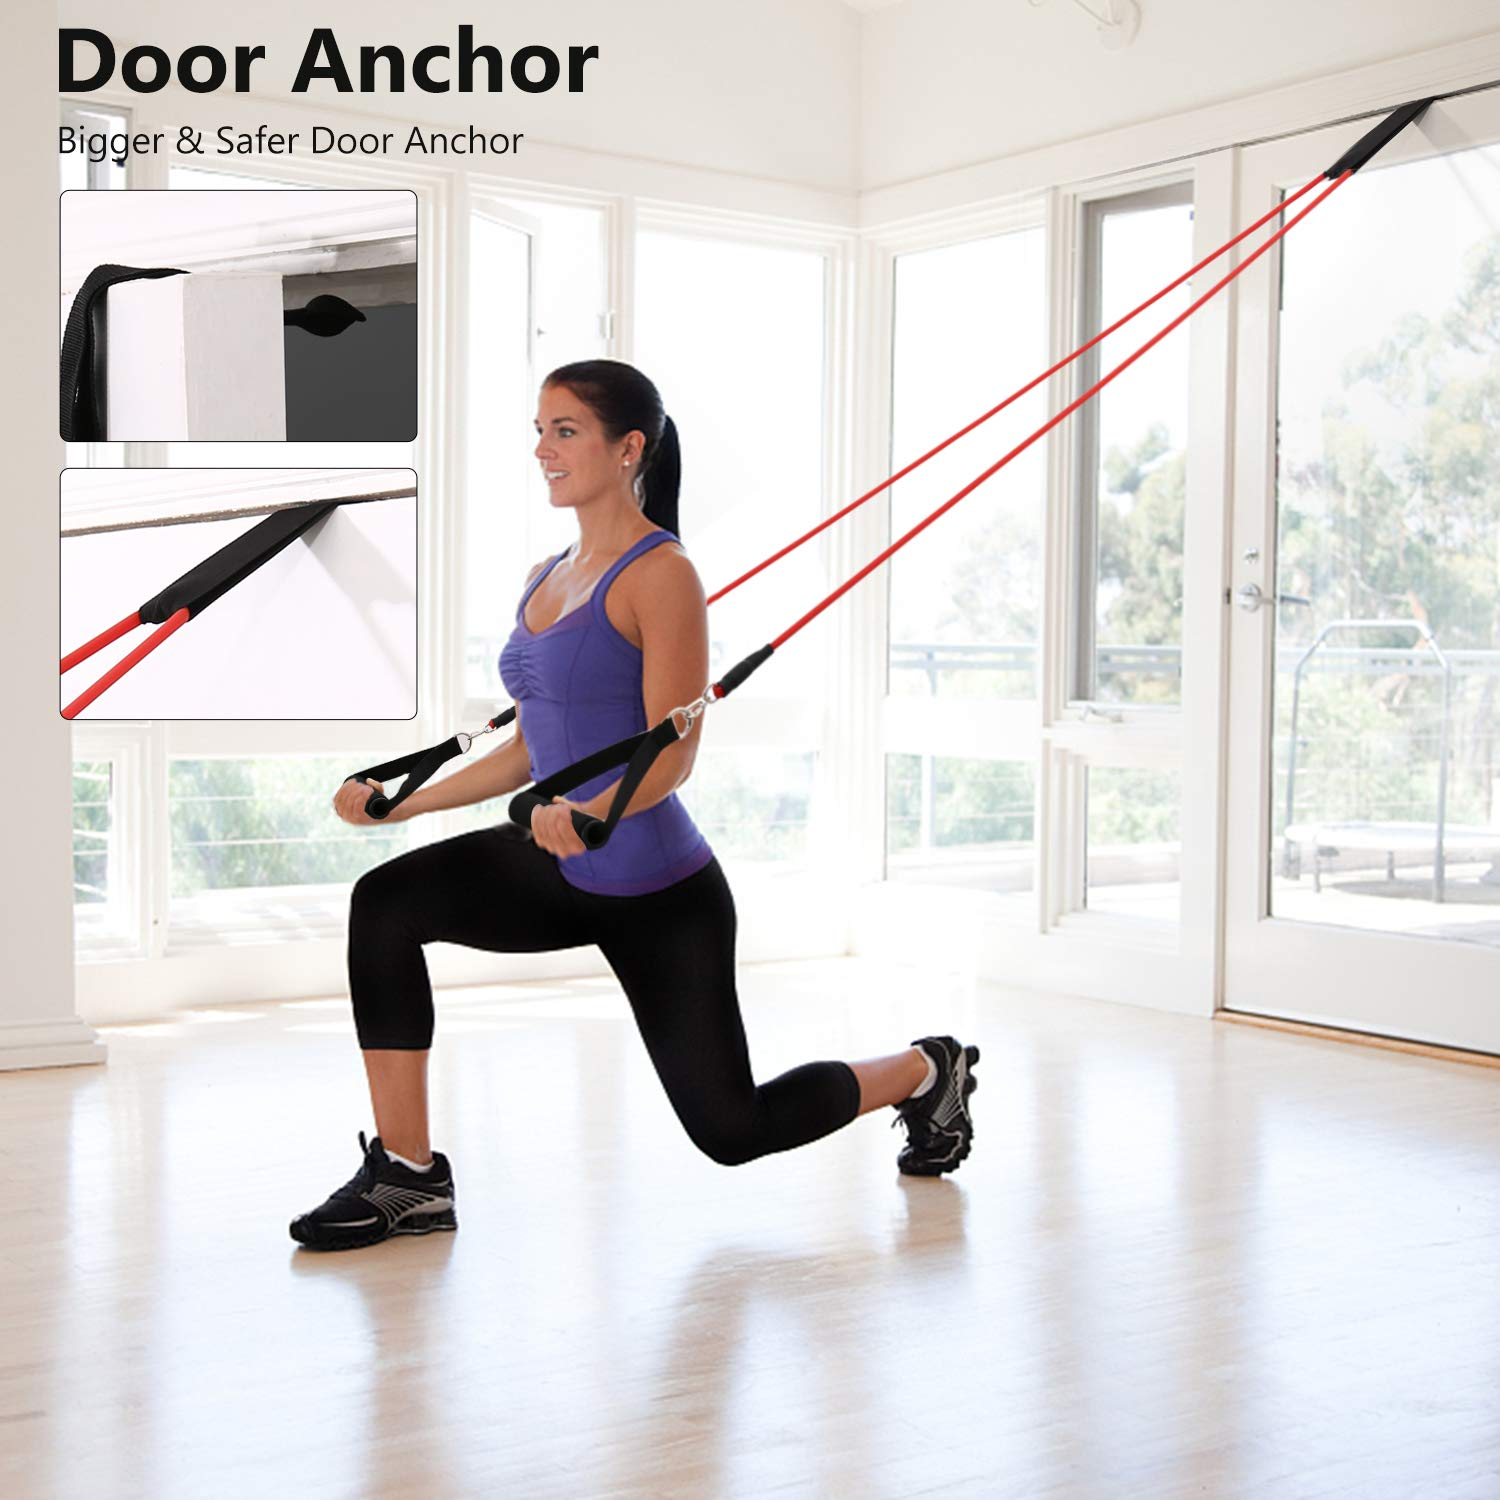 Resistance Band Set 12 Pieces Includes 5 Exercise Tubes Workout Body Gym Ankle Strap Bands Guide Rubber